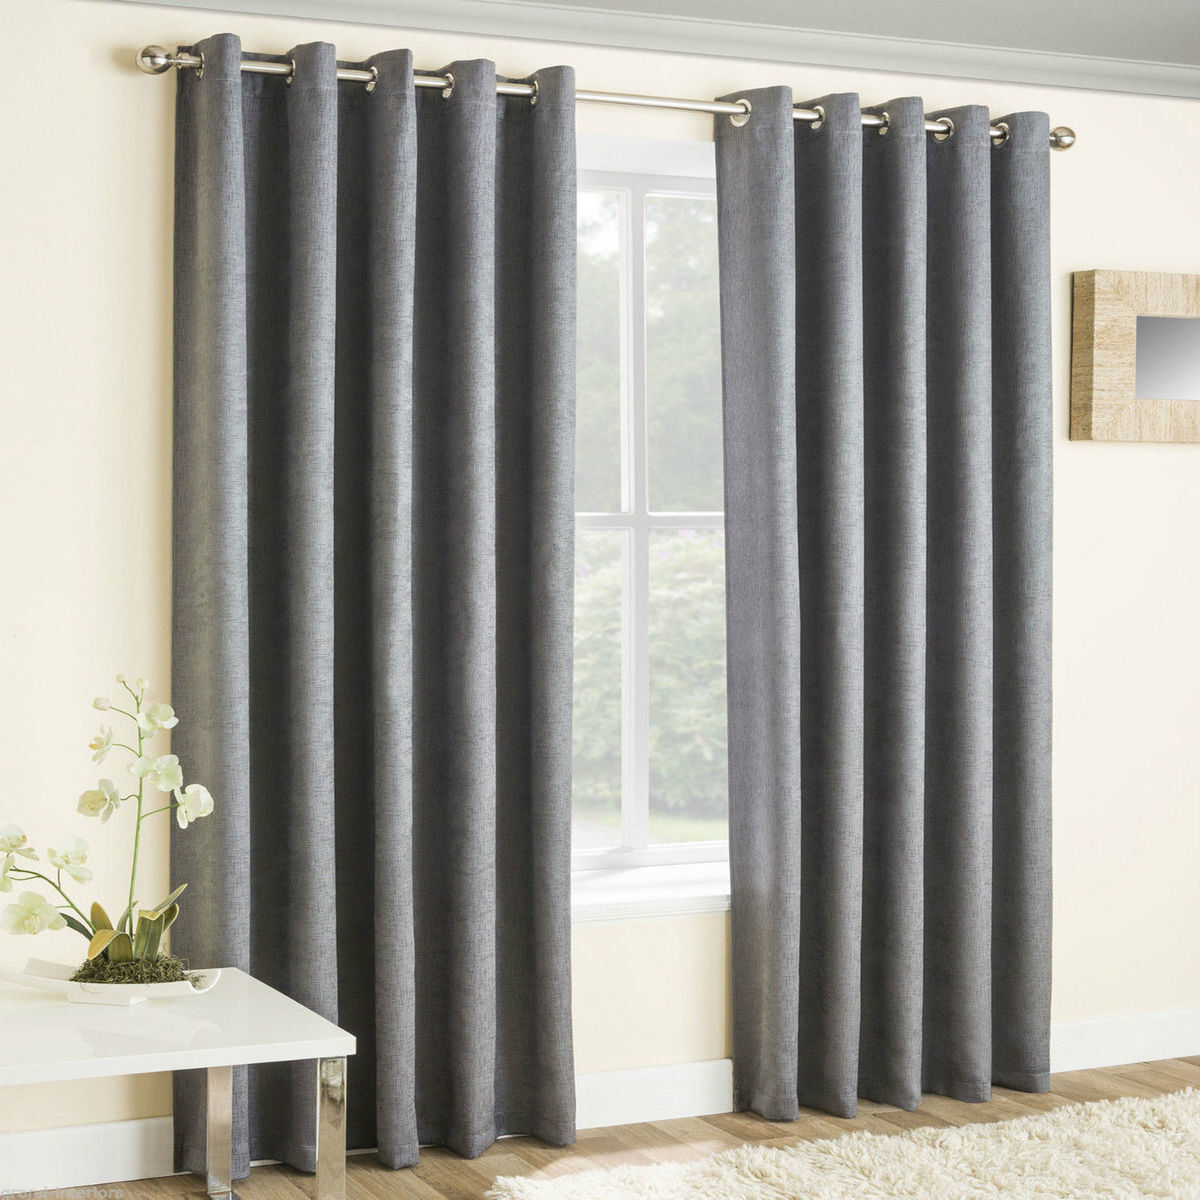 VOGUE THERMAL BLOCKOUT LINED CURTAINS EYELET RING TOP PLAIN TEXTURED READY MADE